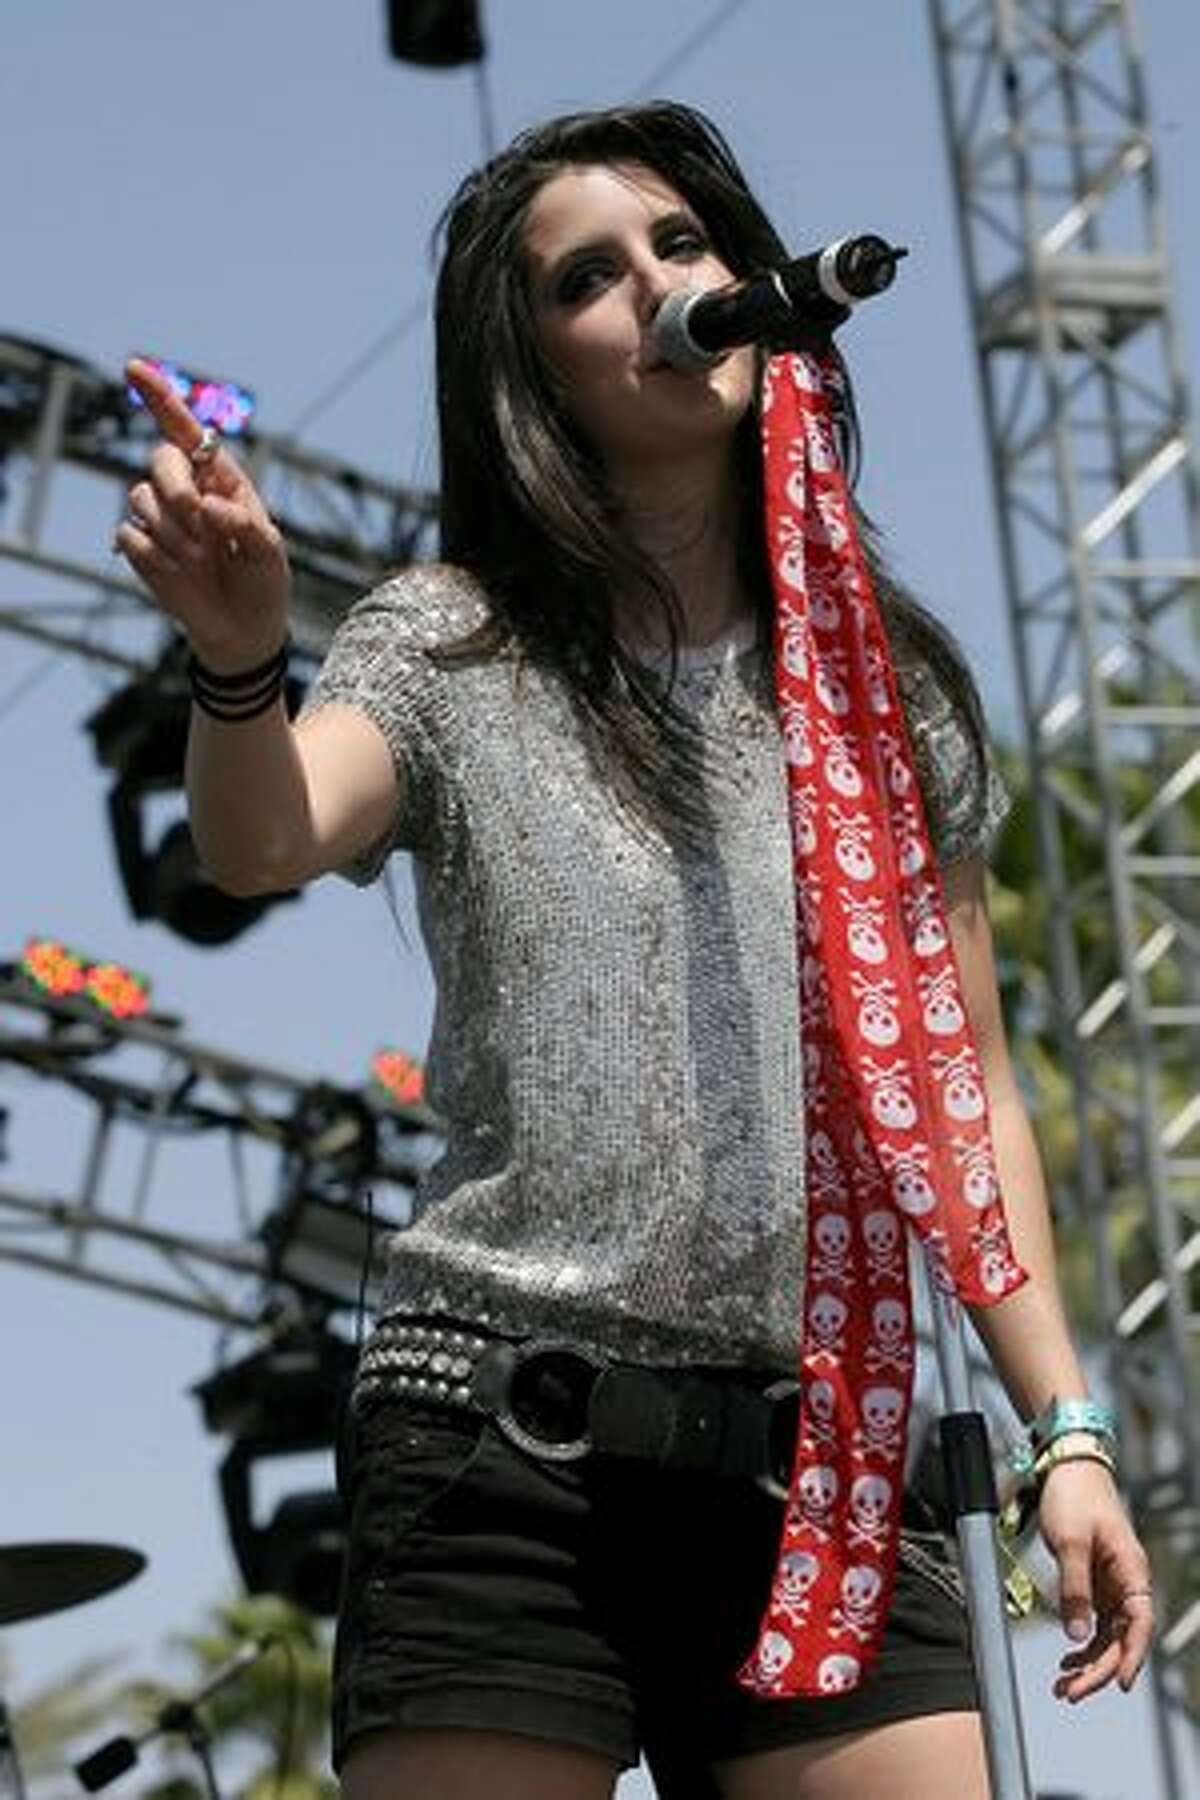 Singer Alana Grace performs during day one of the Coachella Valley Music & Arts Festival 2010 held at the Empire Polo Club in Indio, Calif., on Friday, April 16, 2010.